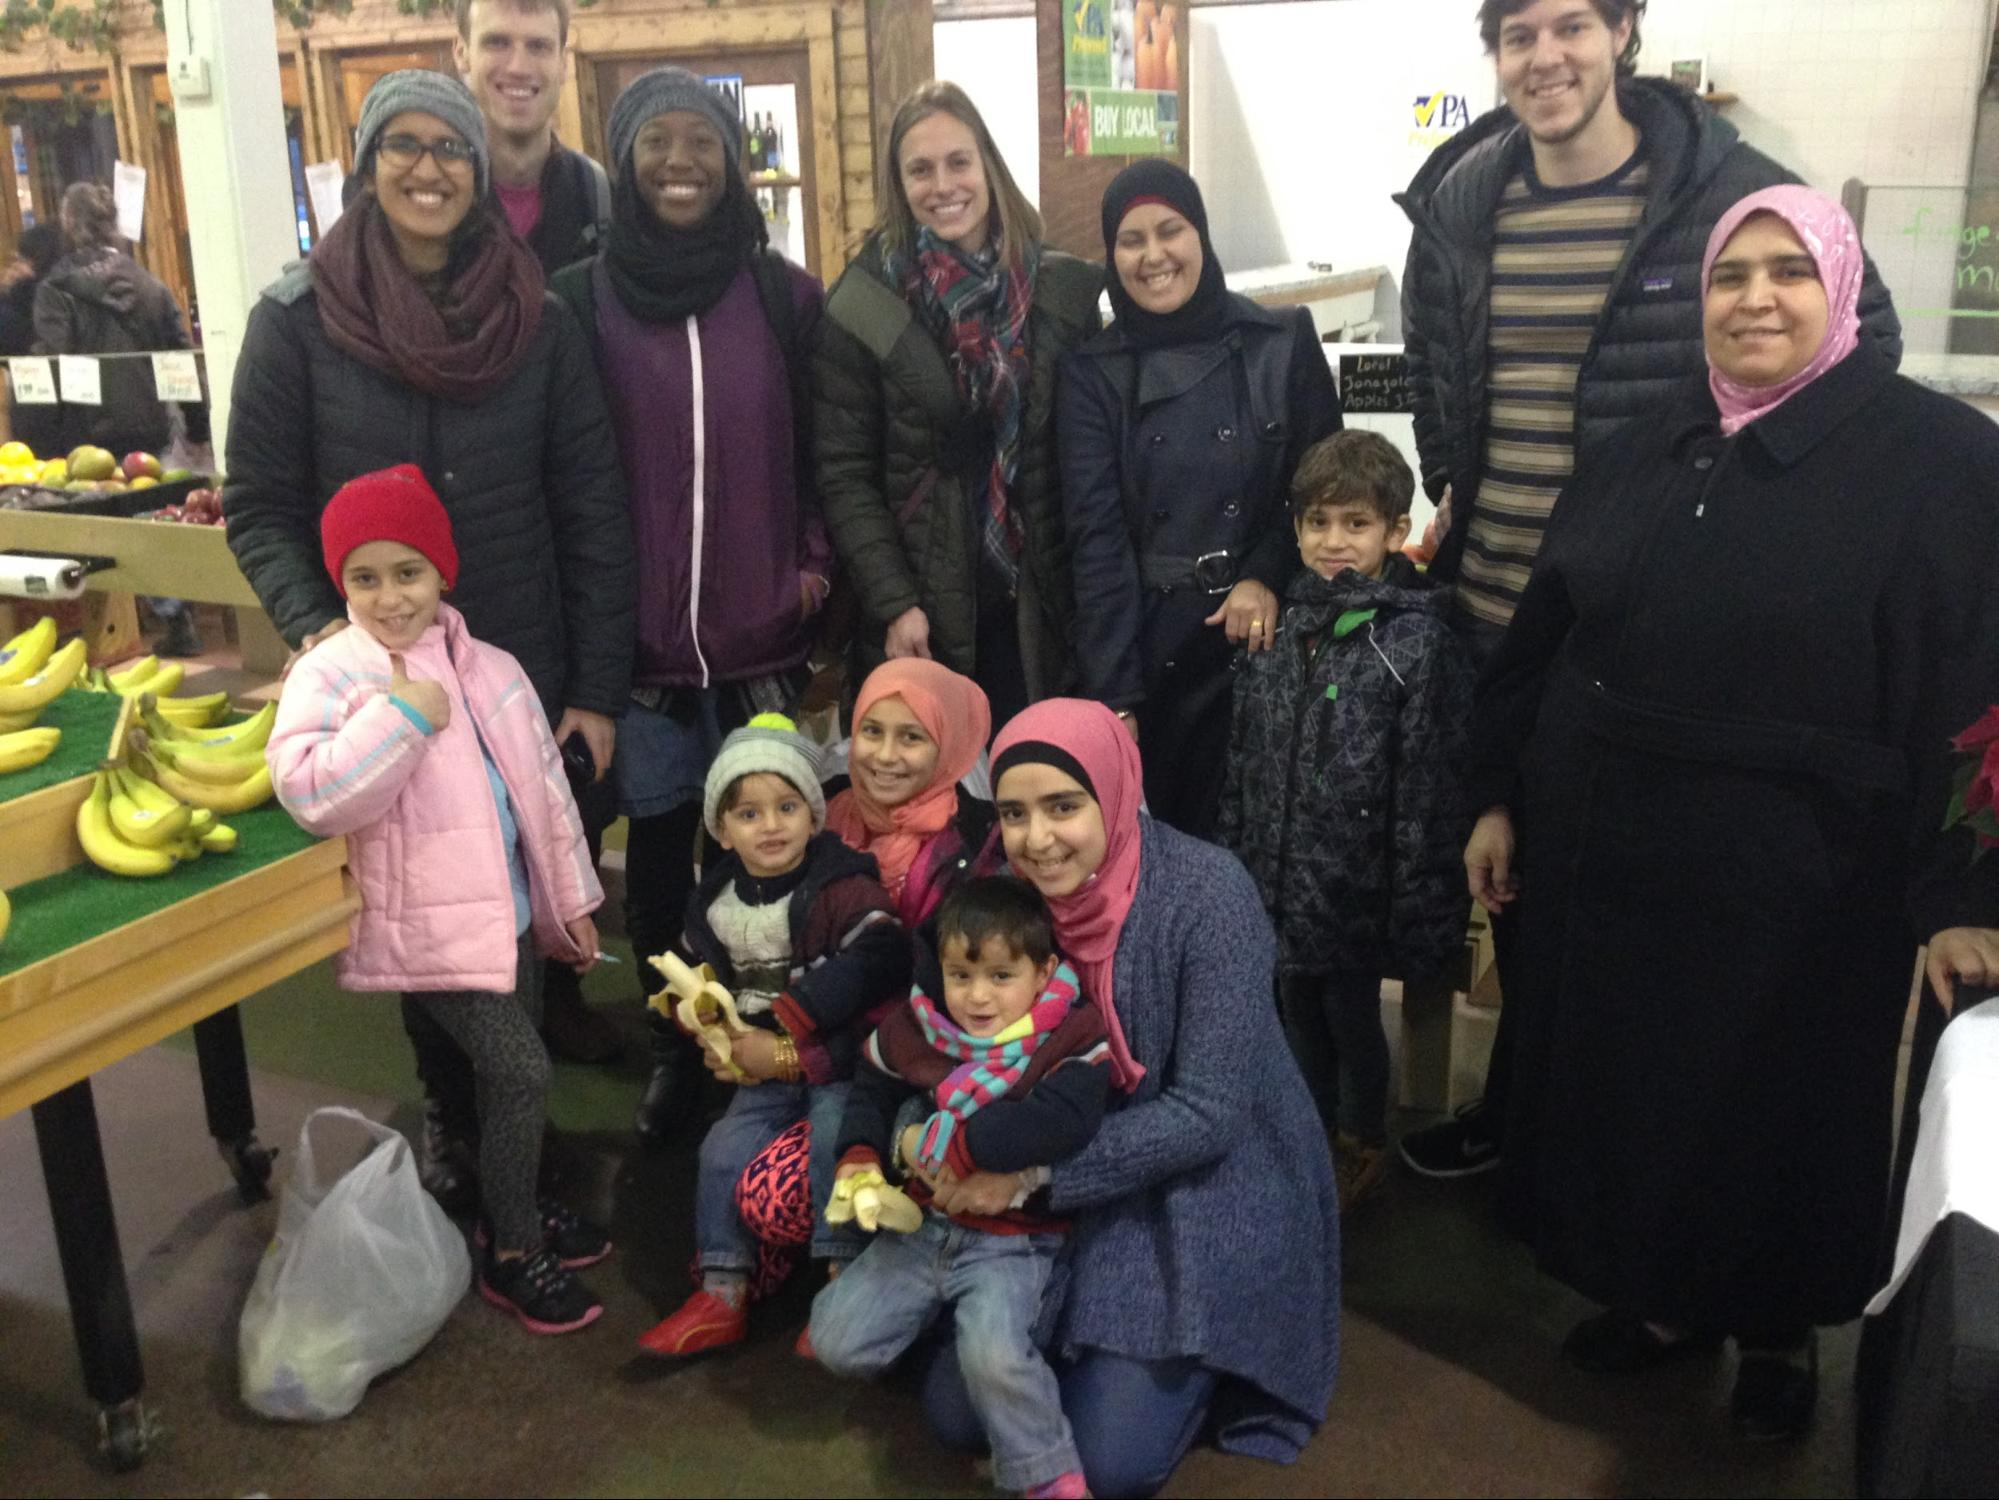 A photo of medical students with a refugee family at a farmer's market